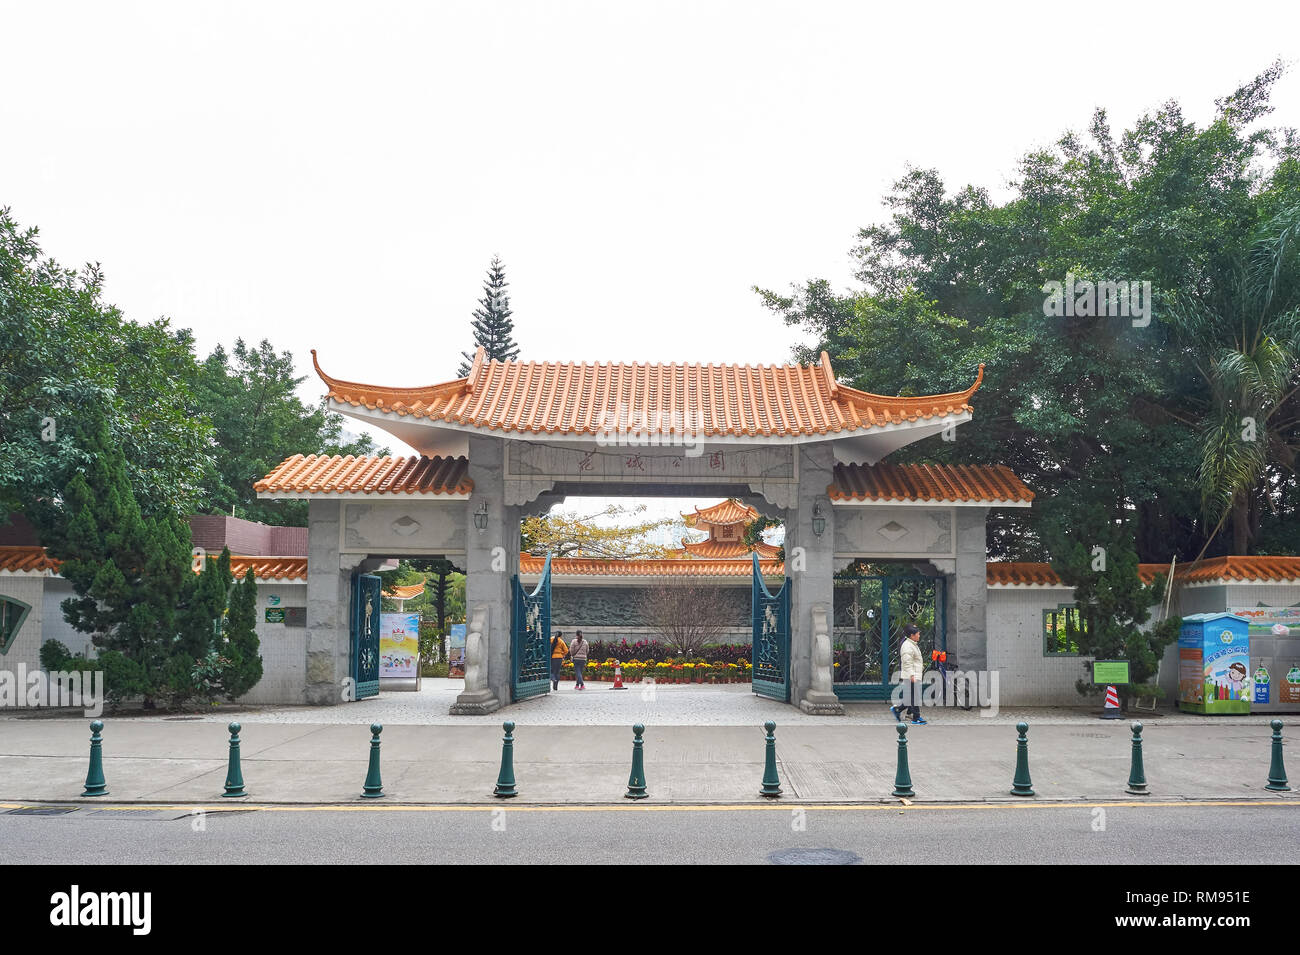 MACAO - CIRCA FEBRUARY, 2016: Macao at daytime. Macao is an autonomous territory on the western side of the Pearl River Delta in East Asia. - Stock Image